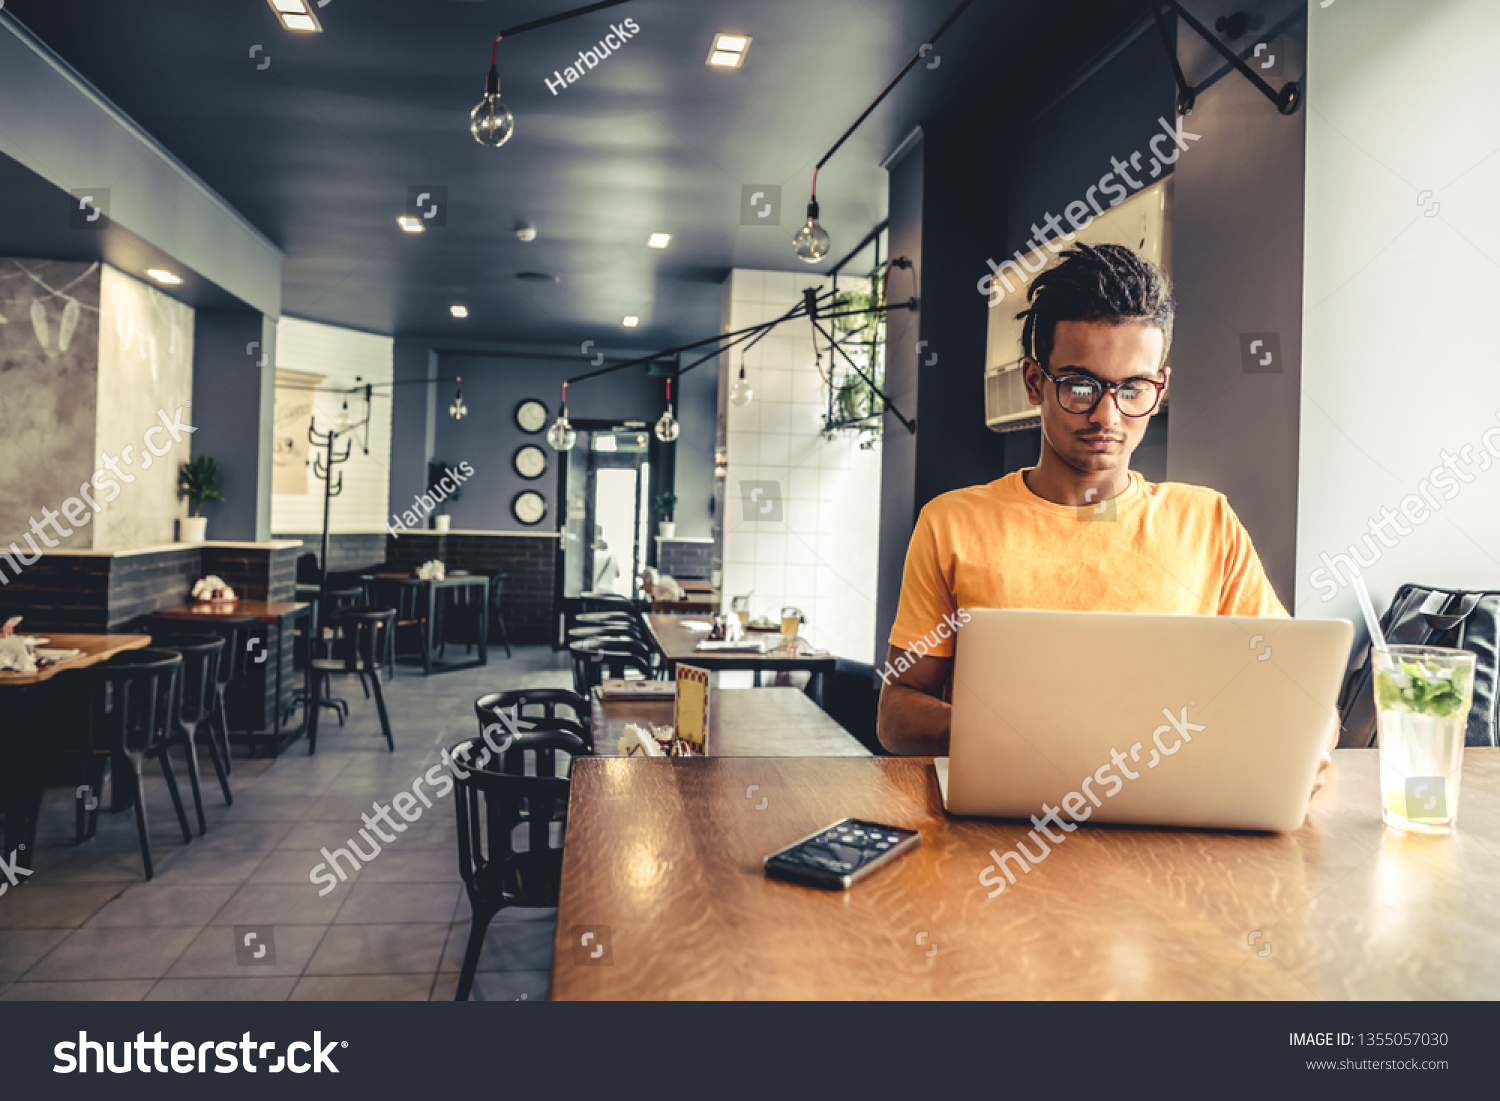 Handsome and successful indian man freelancer work laptop in cafe. Freelance and remote work. #1355057030